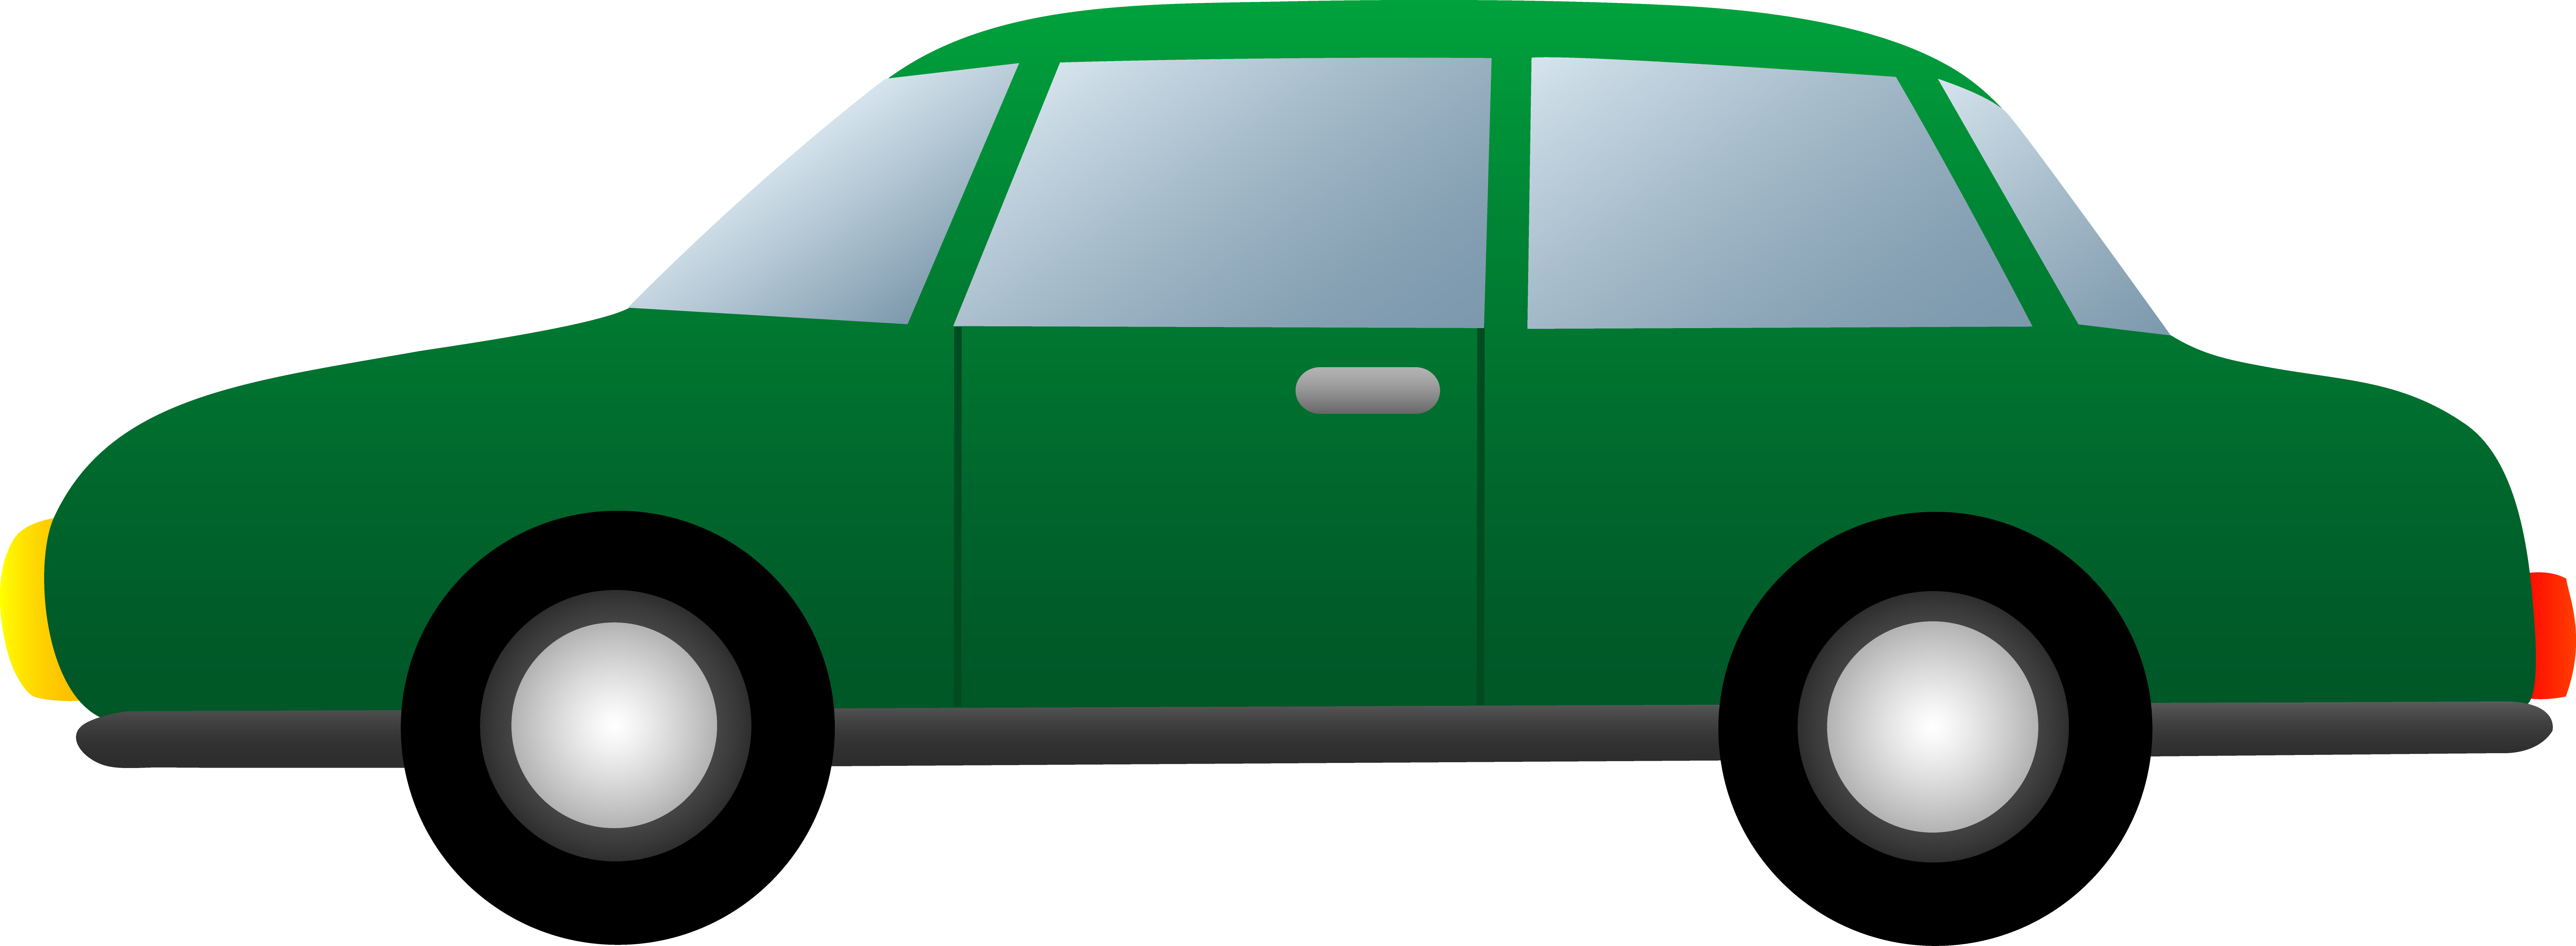 Car green. Simple free clipart image